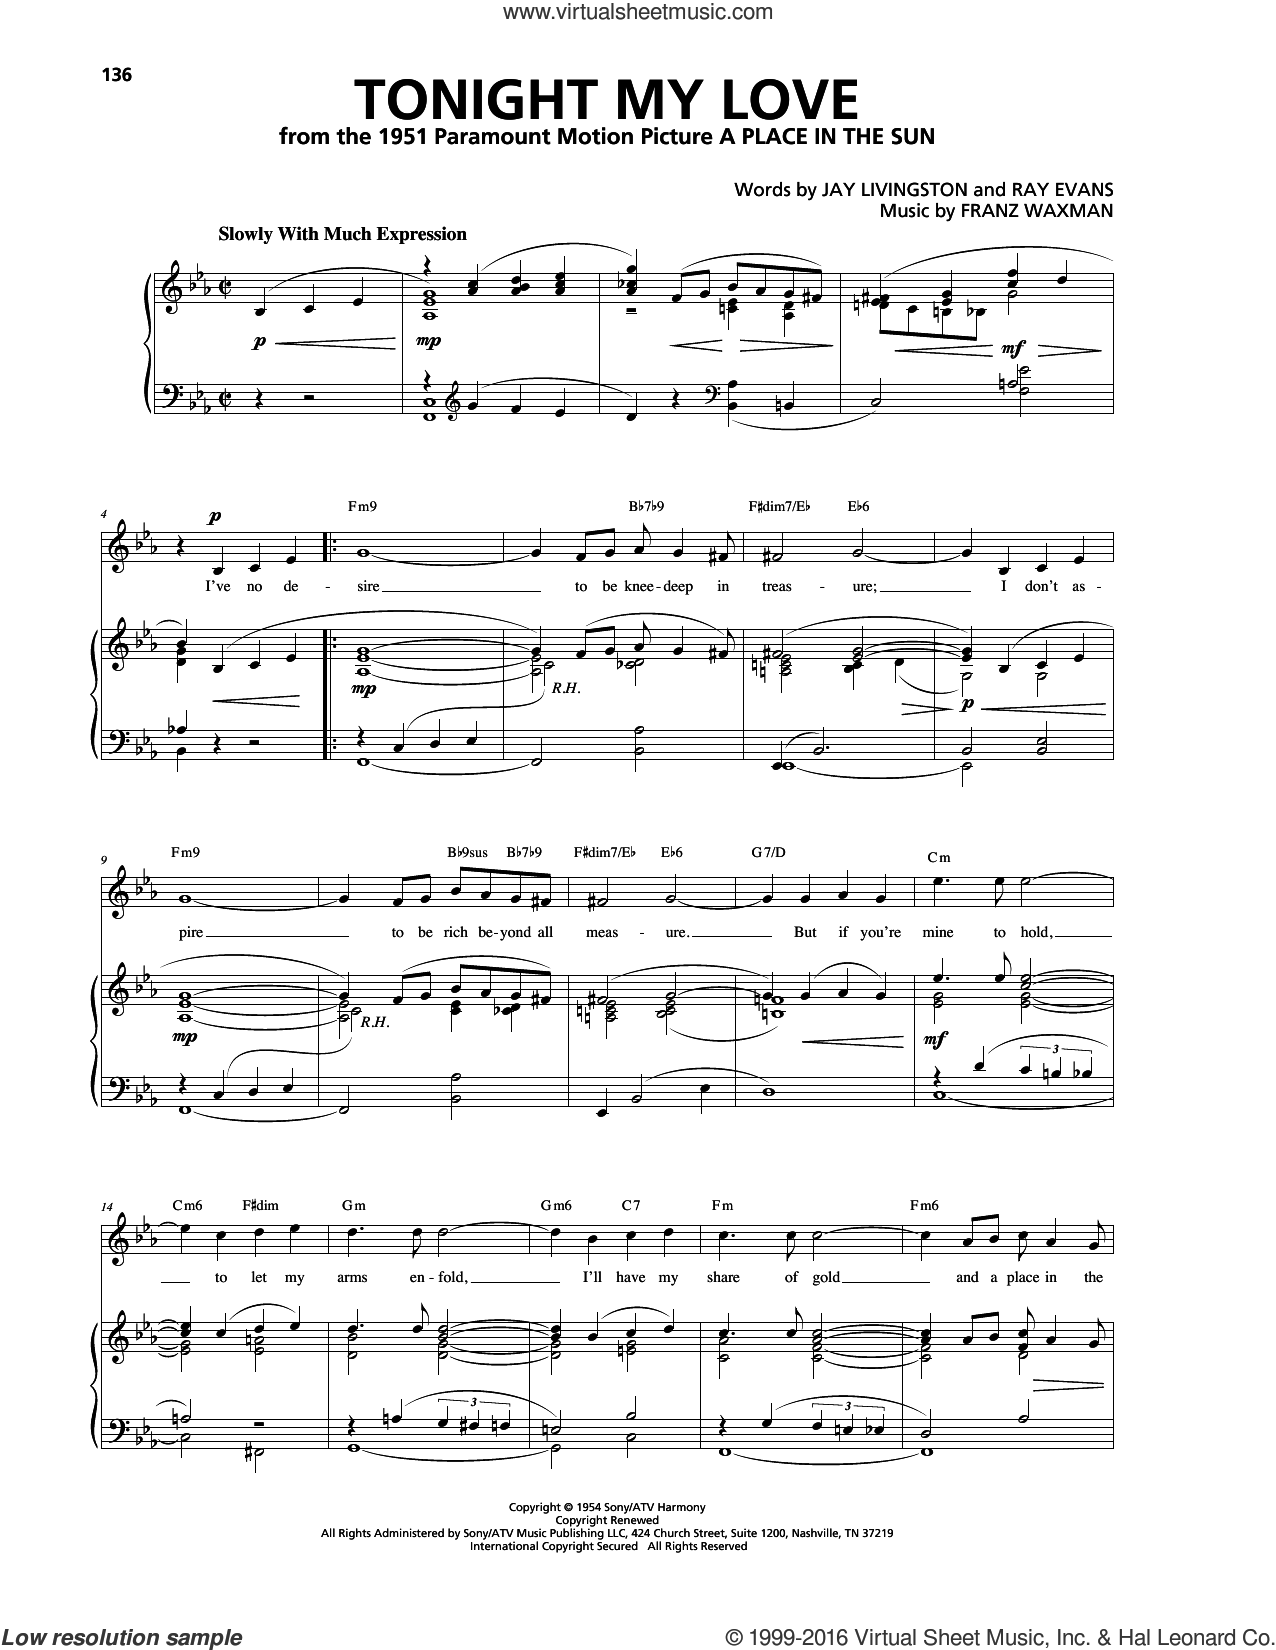 Tonight My Love sheet music for voice, piano or guitar by Jay Livingston, Franz Waxman and Ray Evans. Score Image Preview.